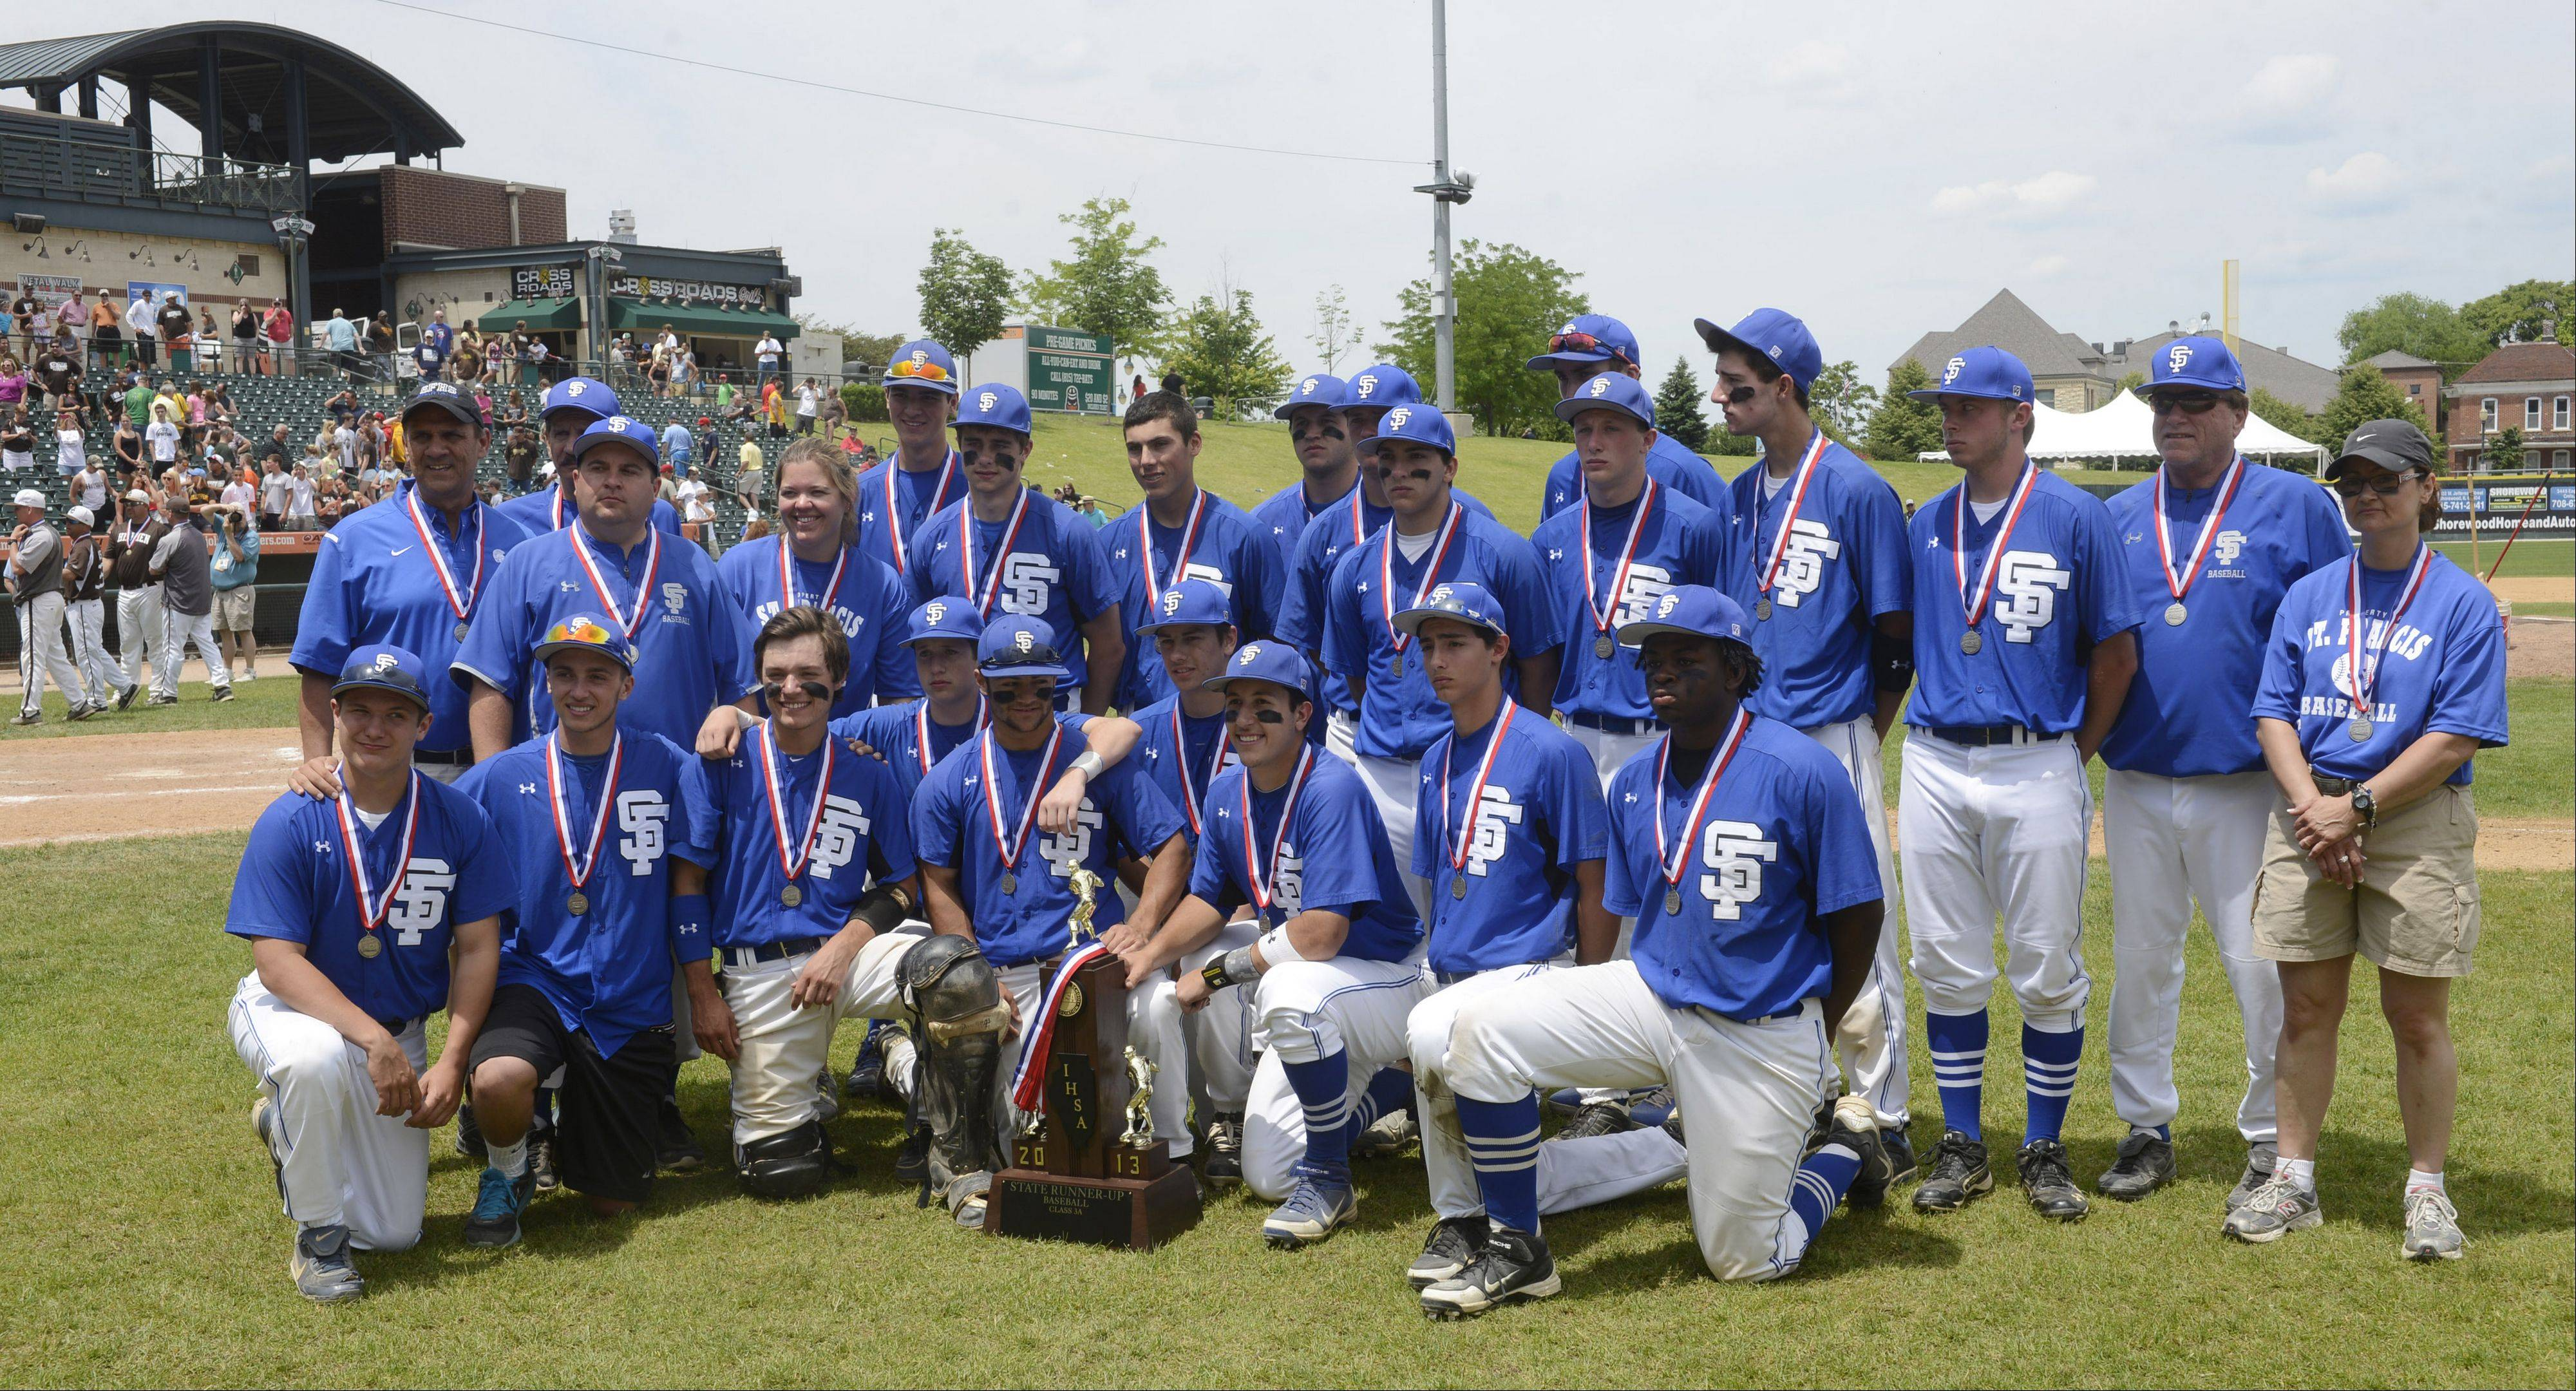 St. Francis players have their photo taken with the second-place trophy following their 5-0 loss to Joliet Catholic during the Class 3A state baseball championship game at Silver Cross Field in Joliet Saturday.